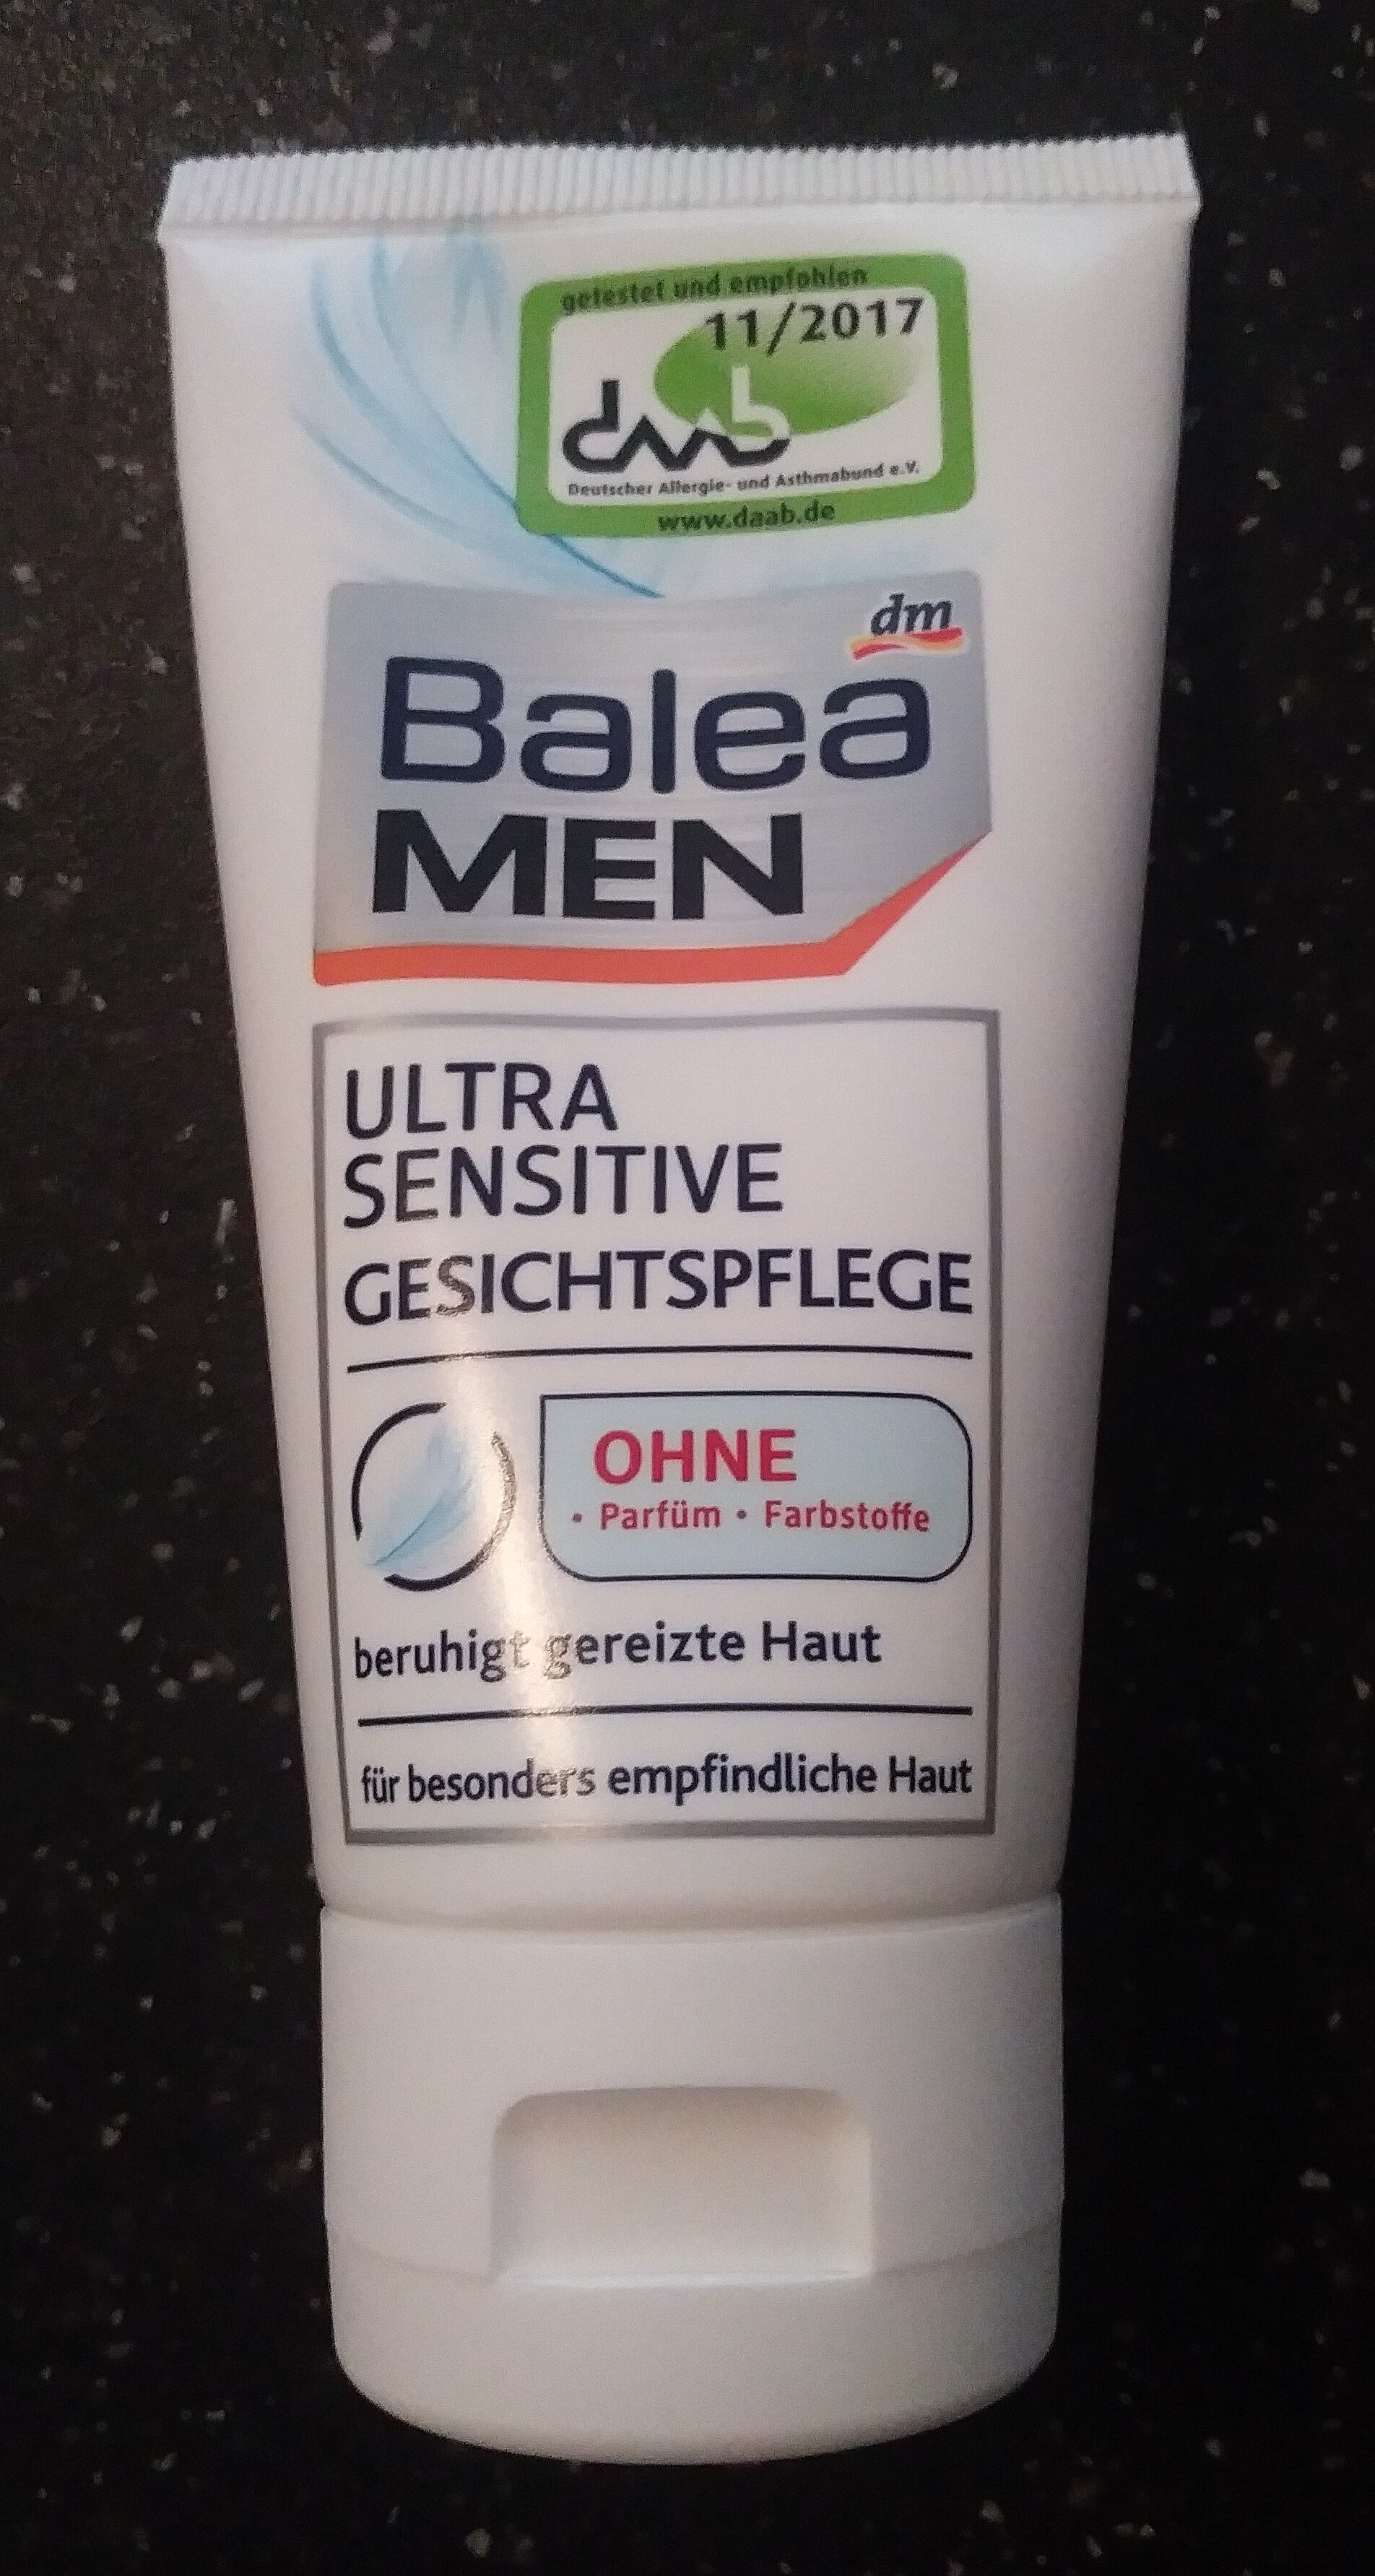 Gesichtspflege Ultra Sensitive - Product